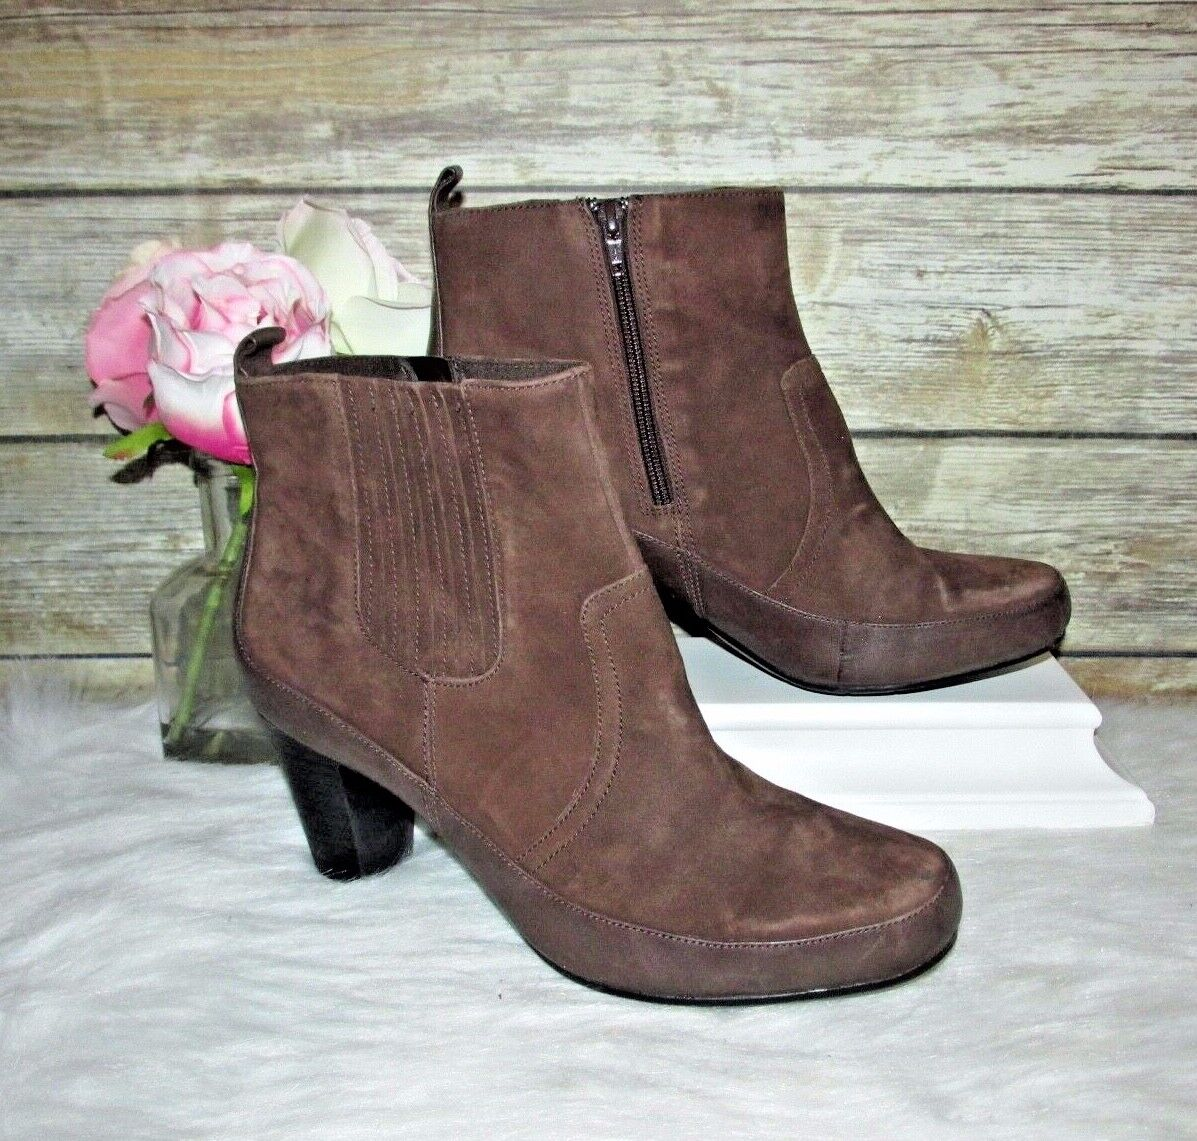 Clarks Bendables Brown Suede Genuine Leather Sz 10 M Zip Up Ankle Boots